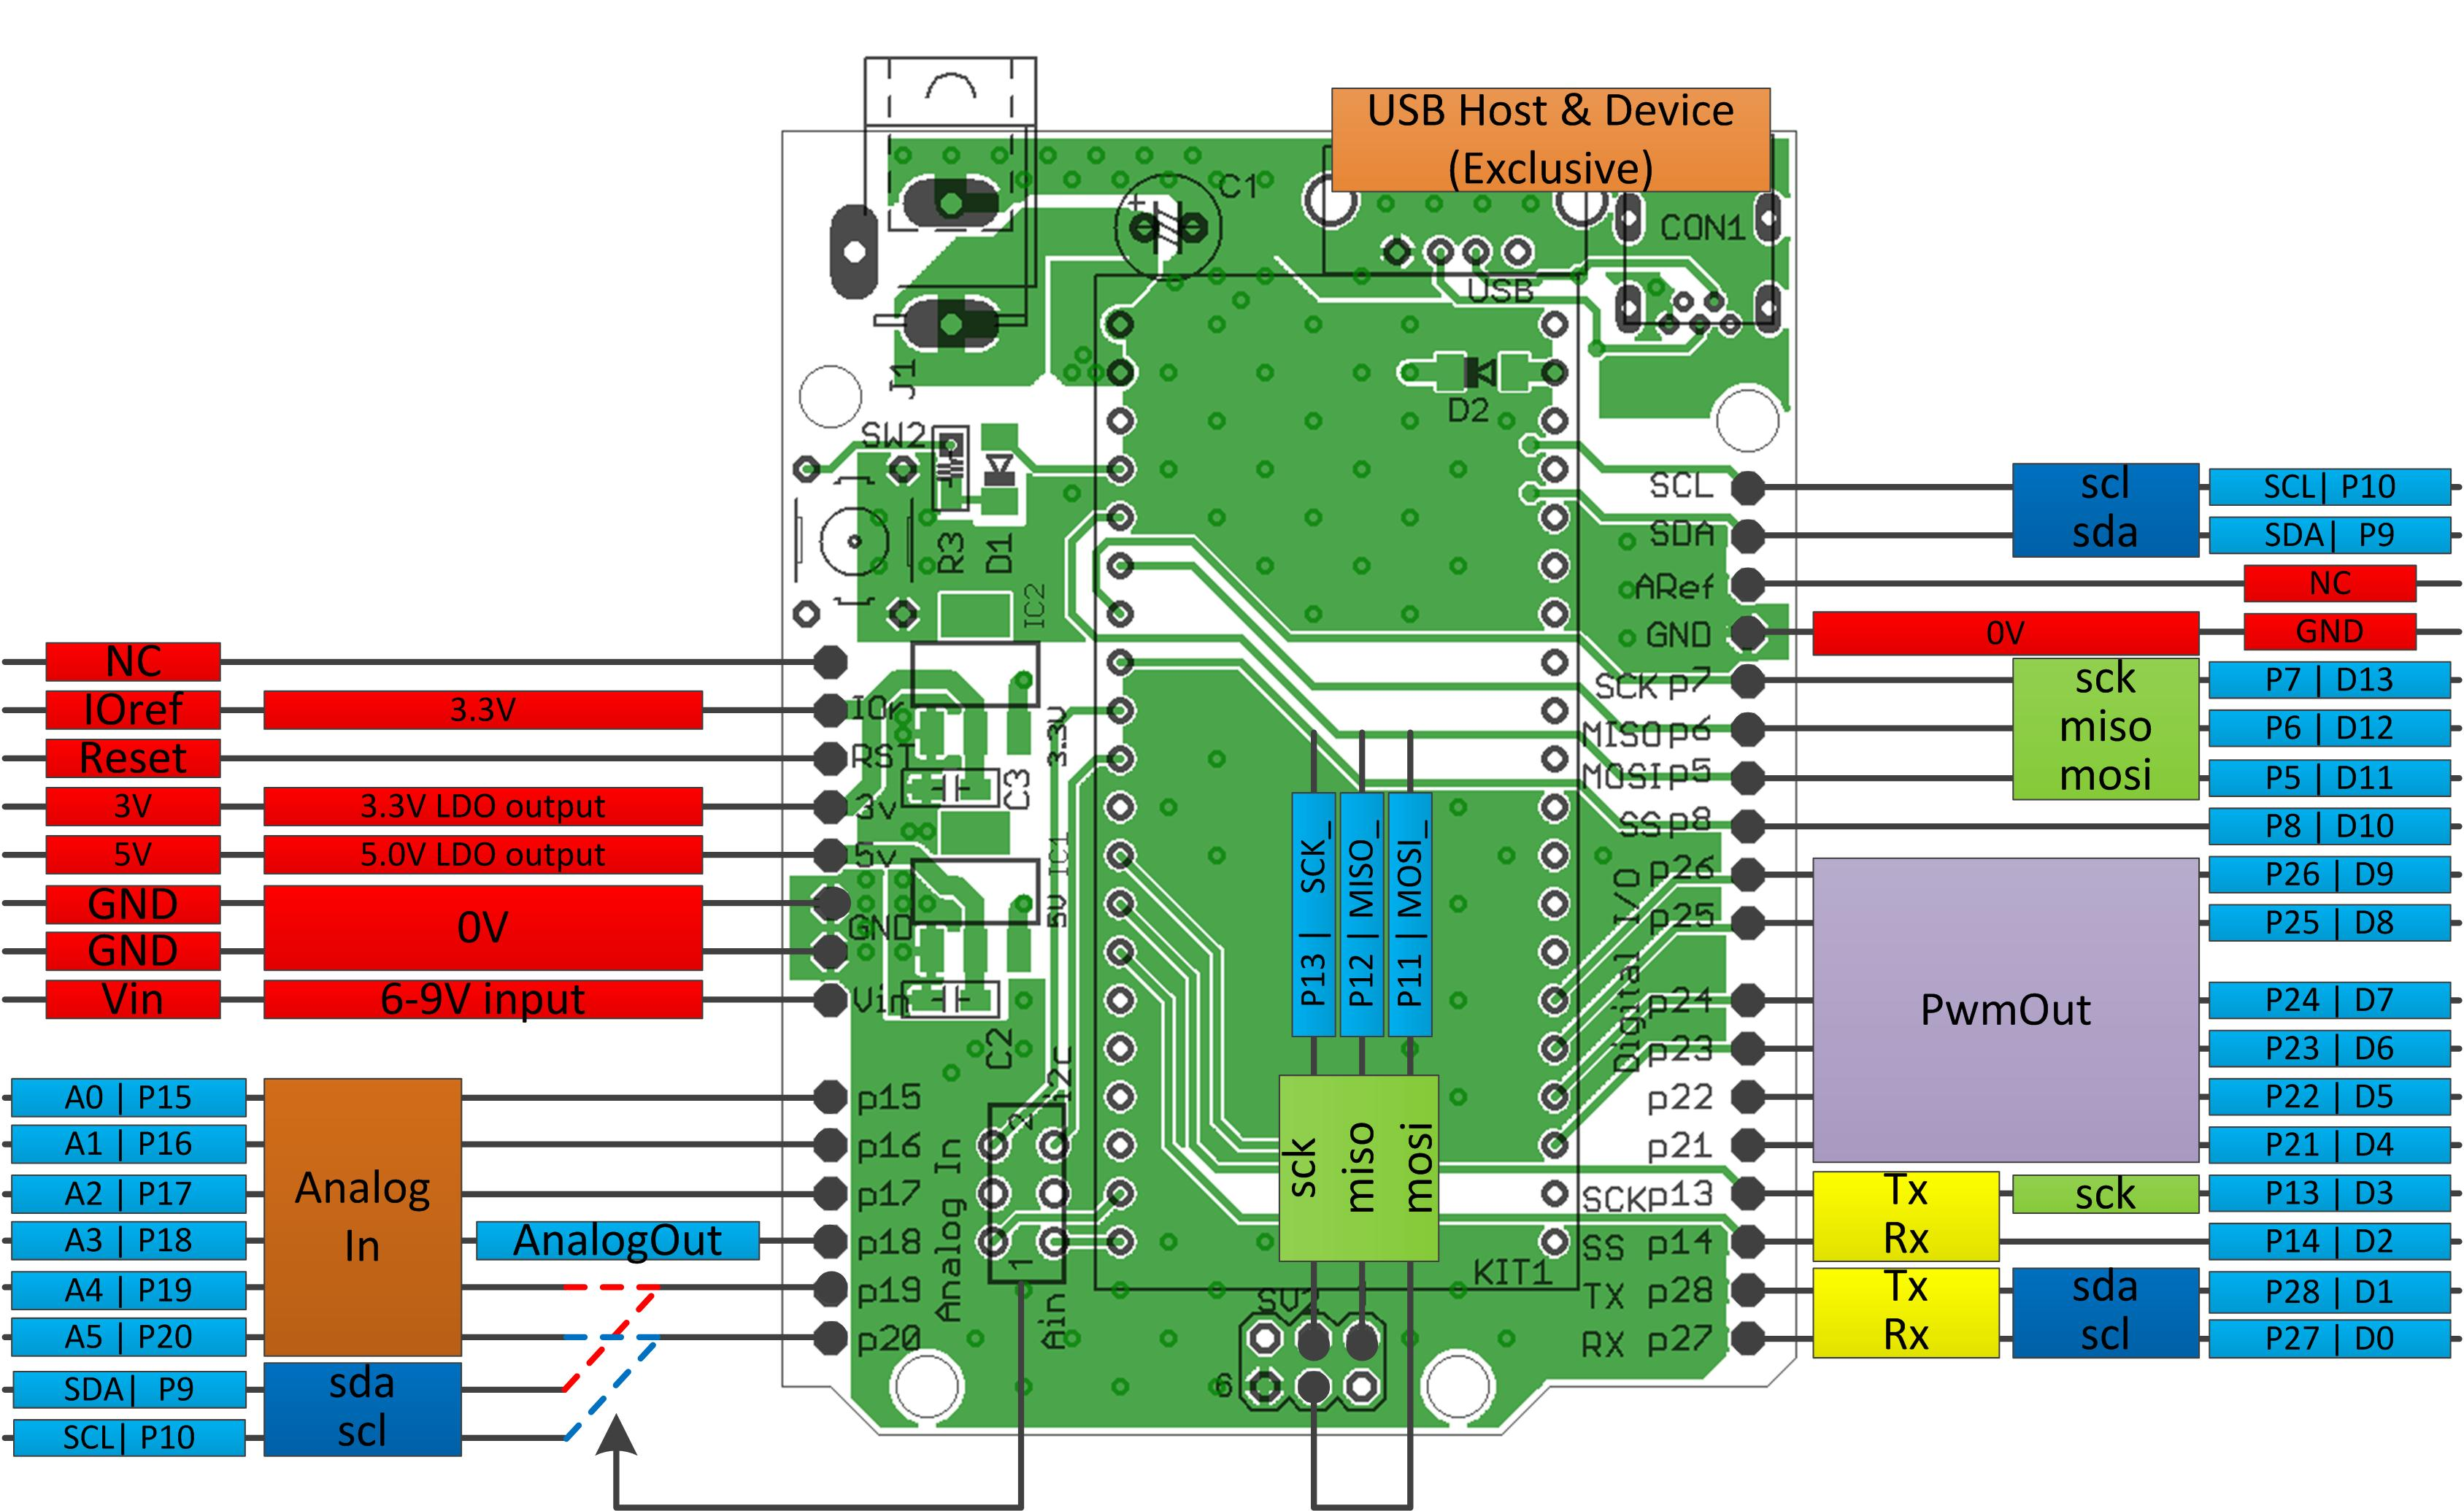 Rj45 Wiring Diagram Pin On Pinterest Wire Cat3 Pcb Connector Schematic Get Free Image About